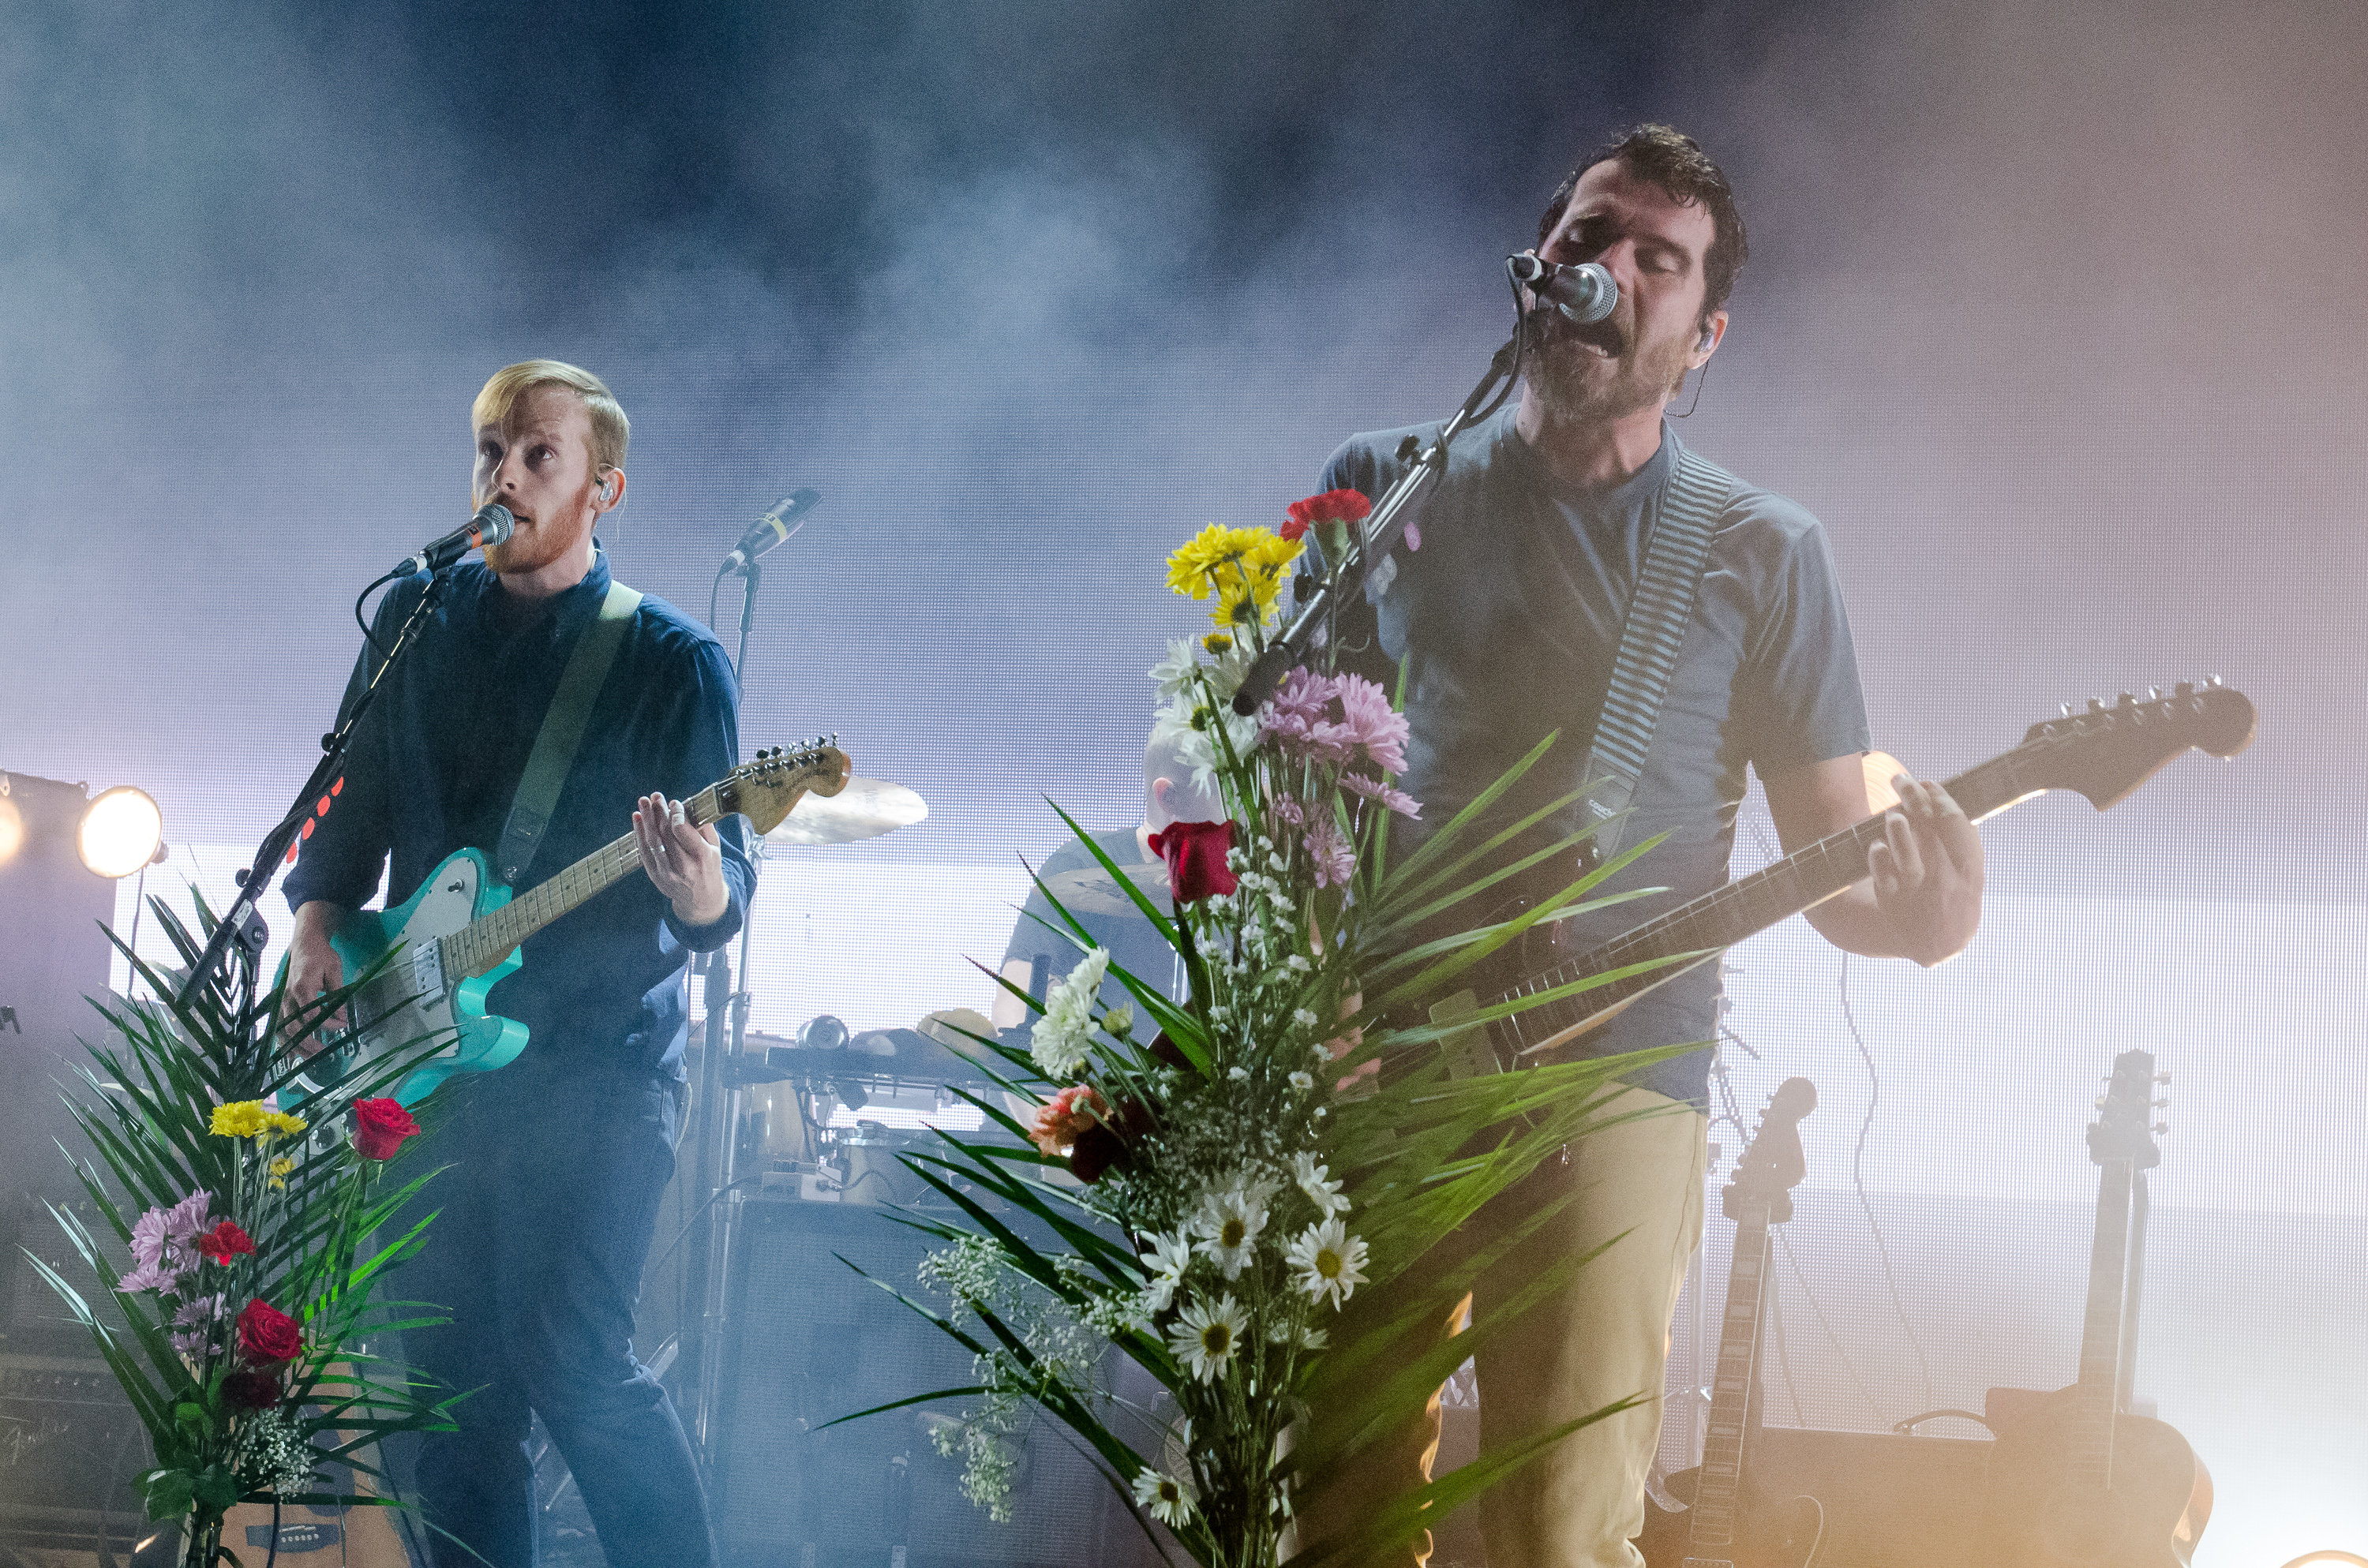 brand new brooklyn ben kaye 11 Live Review: Brand New at Brooklyns Kings Theatre (10/19)